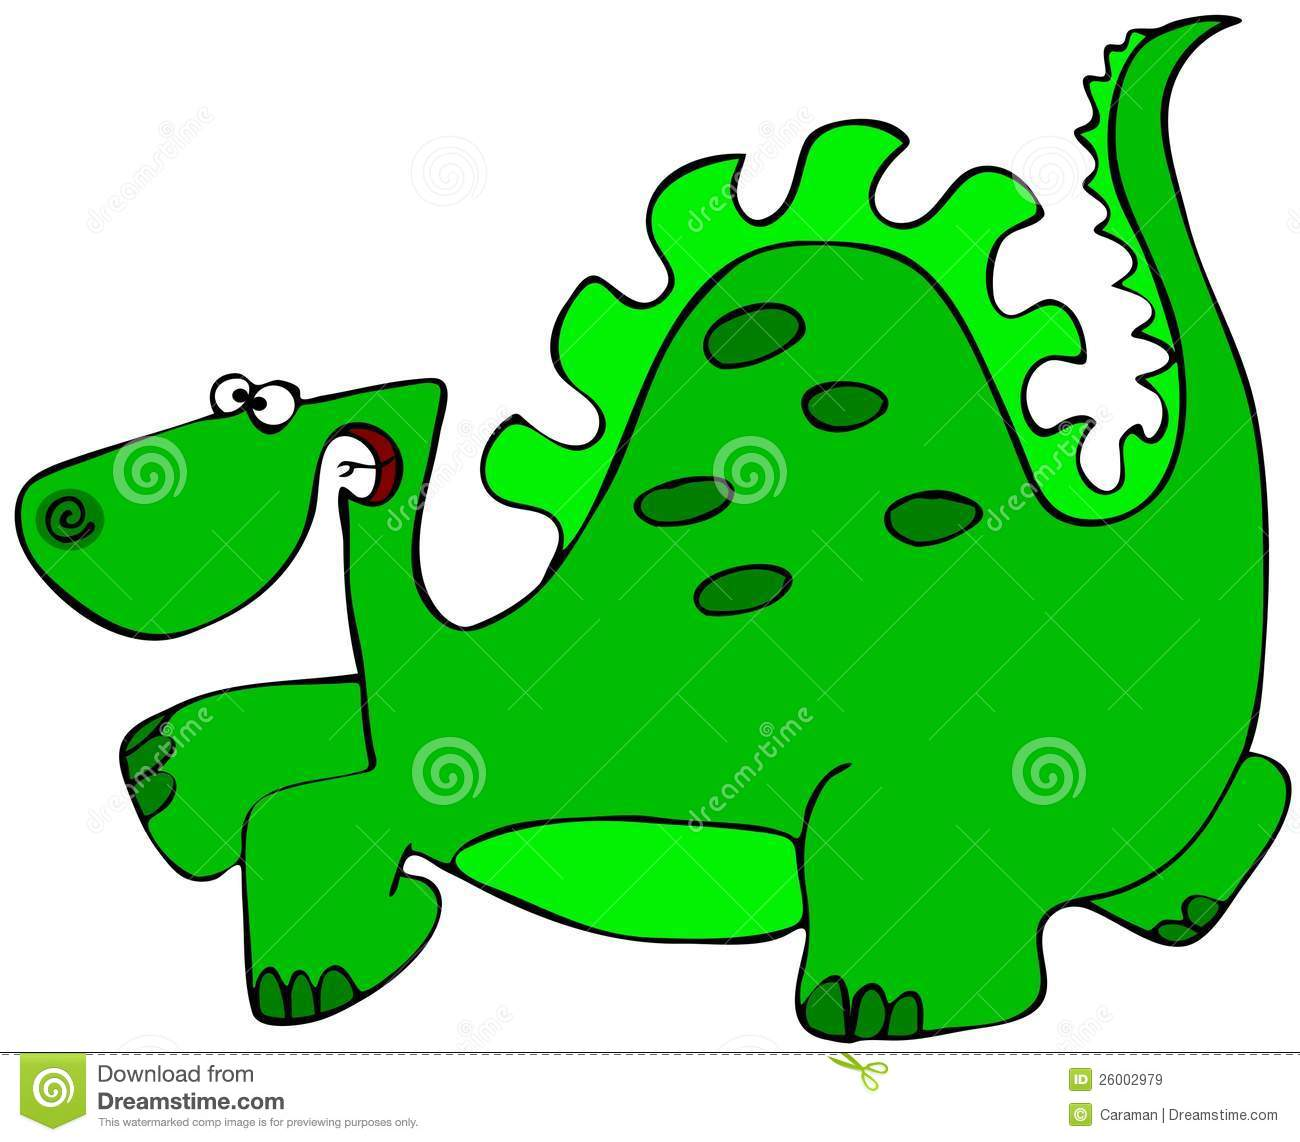 Green Dinosaur Royalty Free Stock Images - Image: 26002979